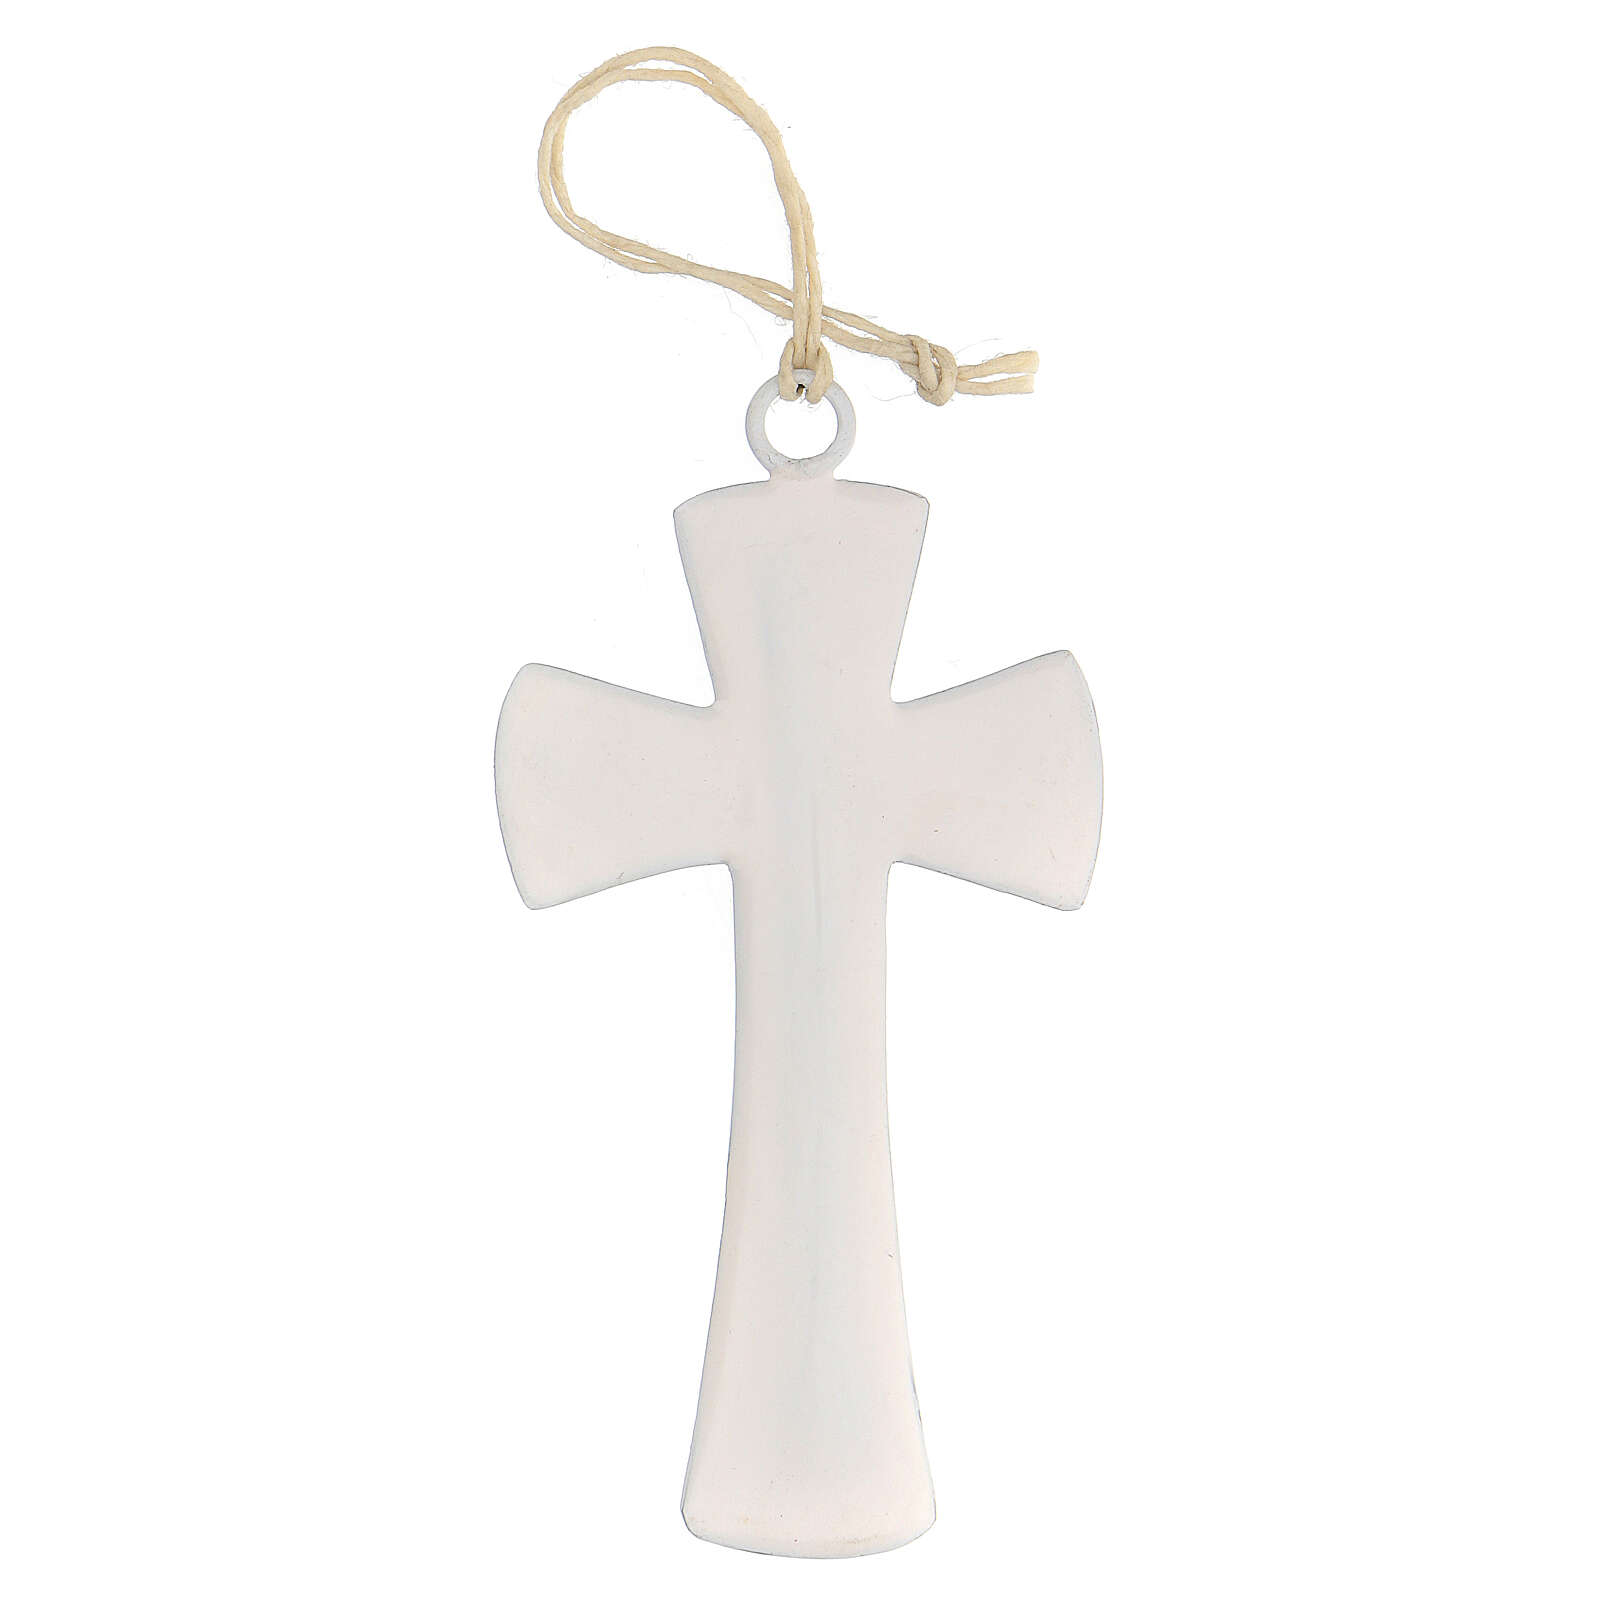 Cruz de pared esmalte blanco 10 cm 4